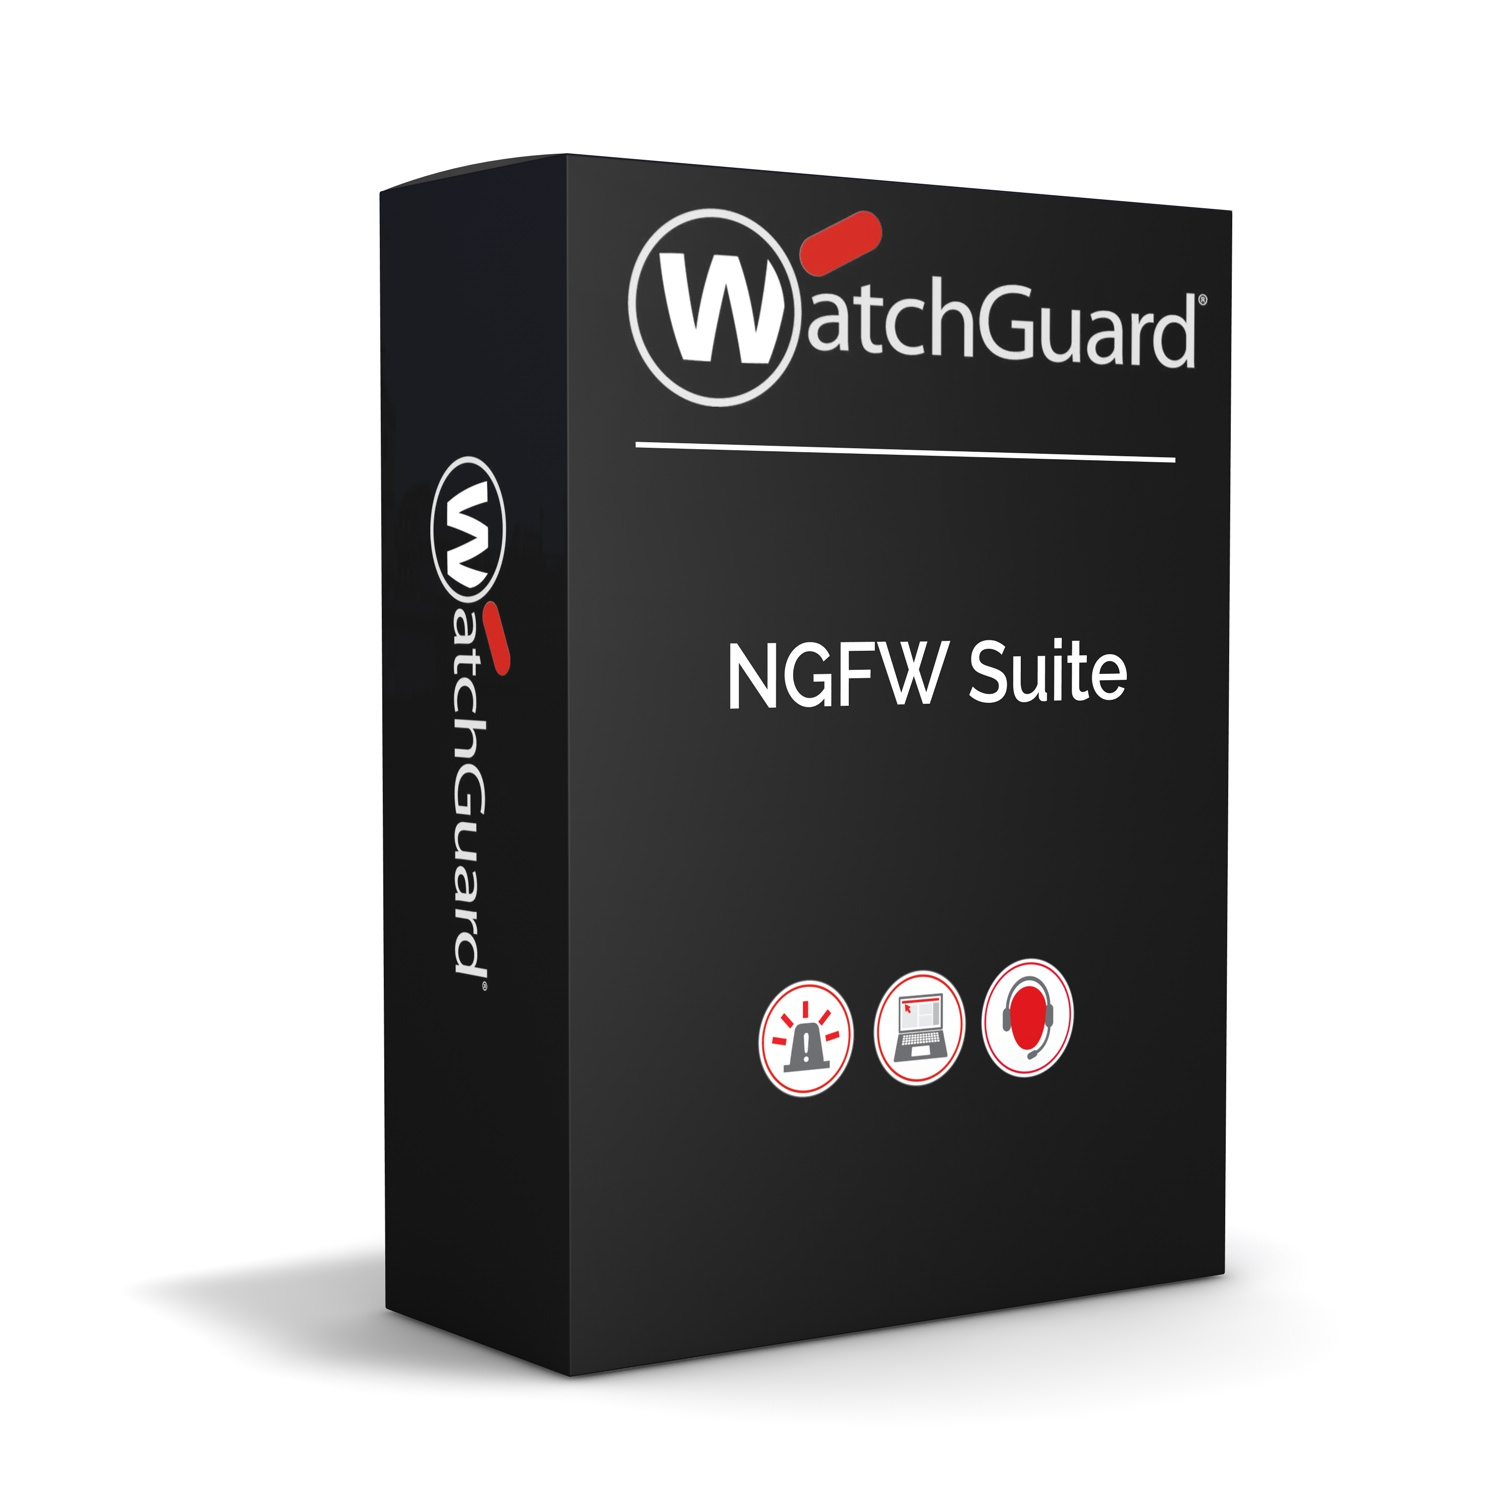 WatchGuard NGFW Suite Renewal/Upgrade 1-yr for Firebox M400